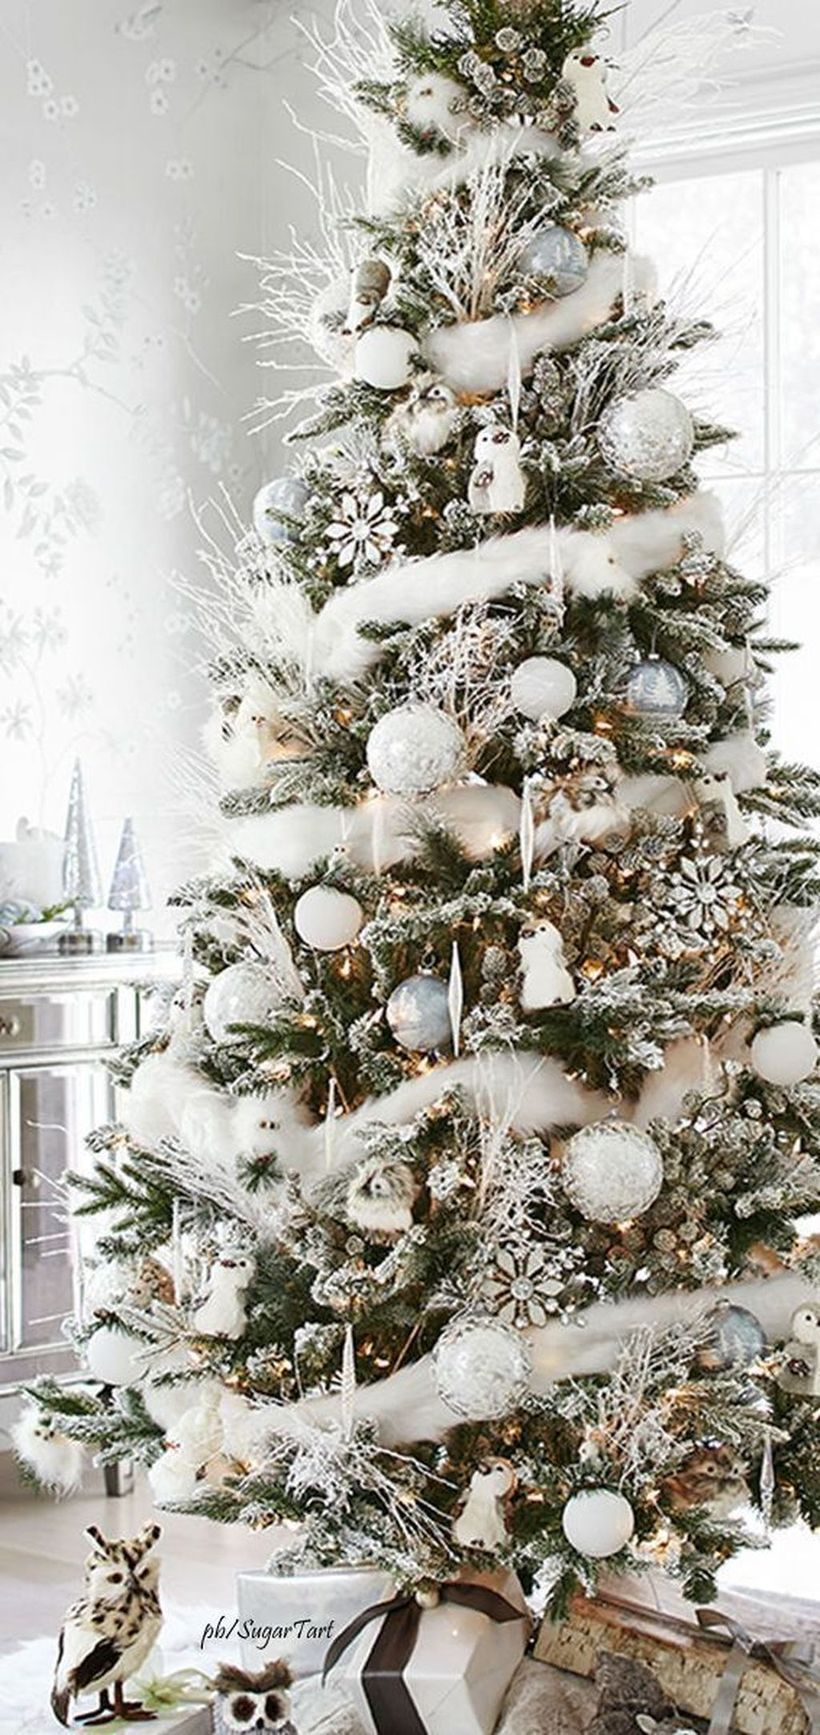 53 Awesome White Christmas Tree Decor Ideas for the Holiday Season #kerstboomversieringen2019